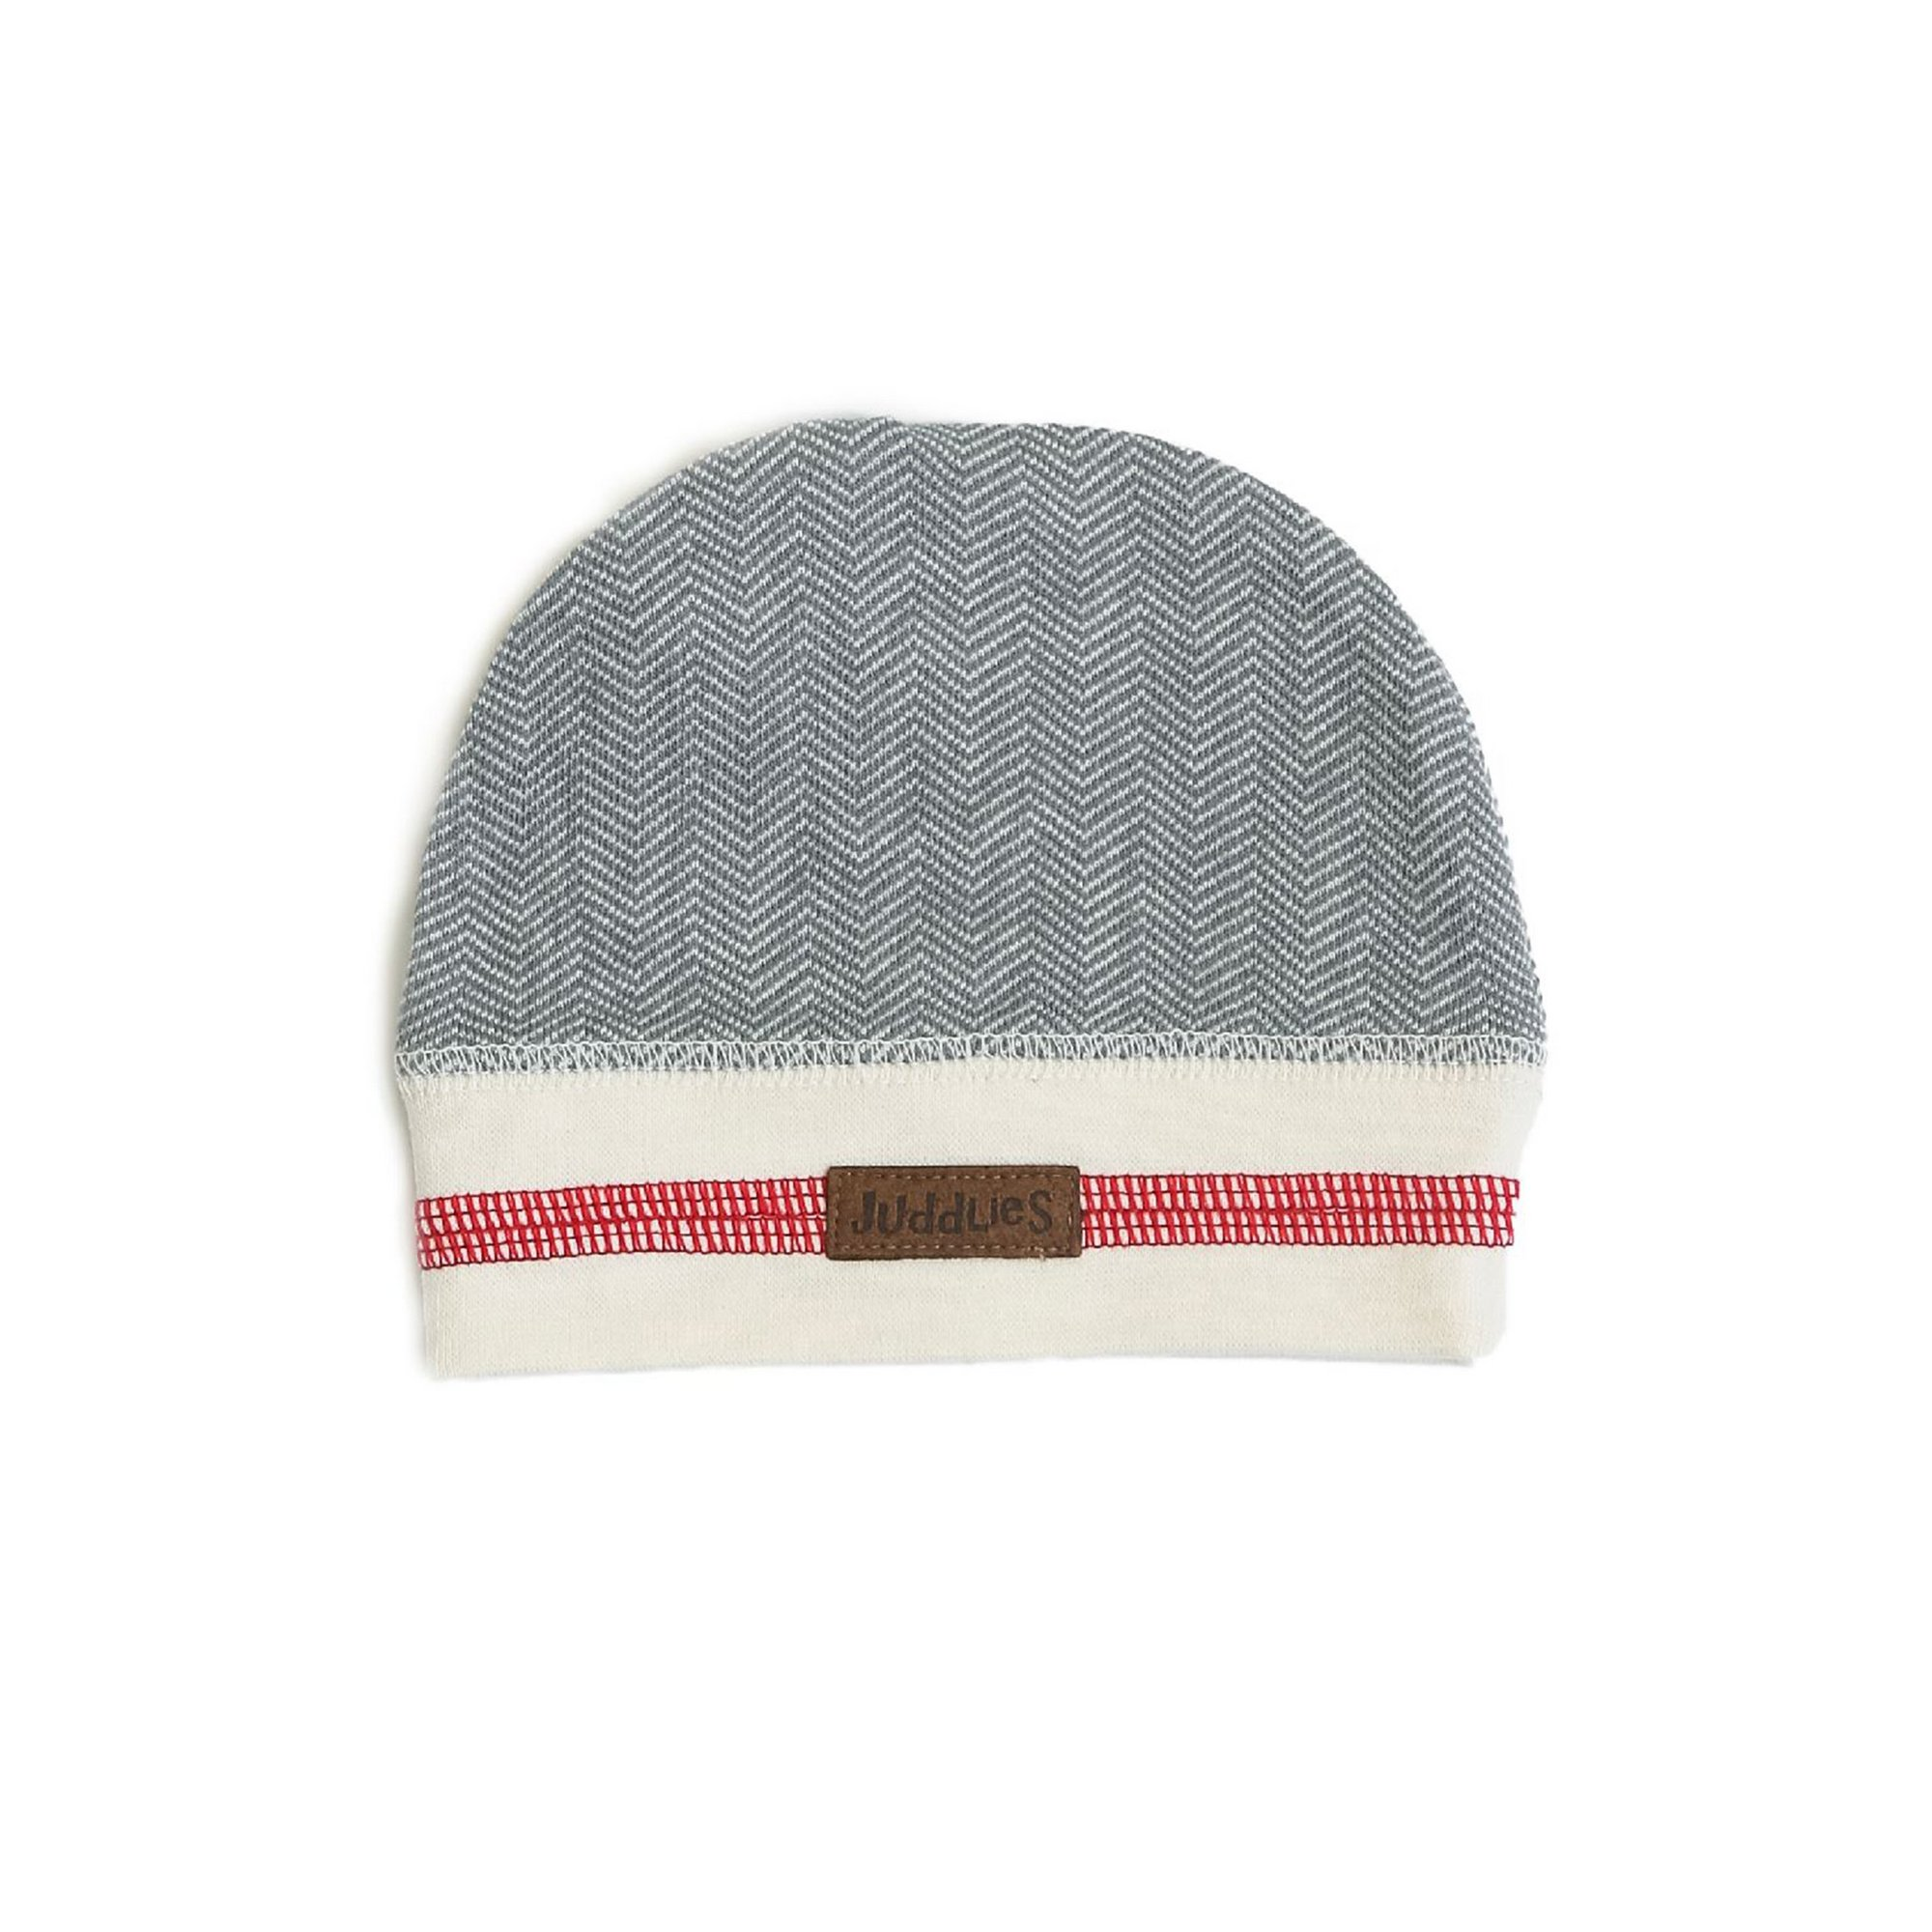 Image of Juddlies Cottage Collection Cottage Beanie Driftwood Grey (0 3M)